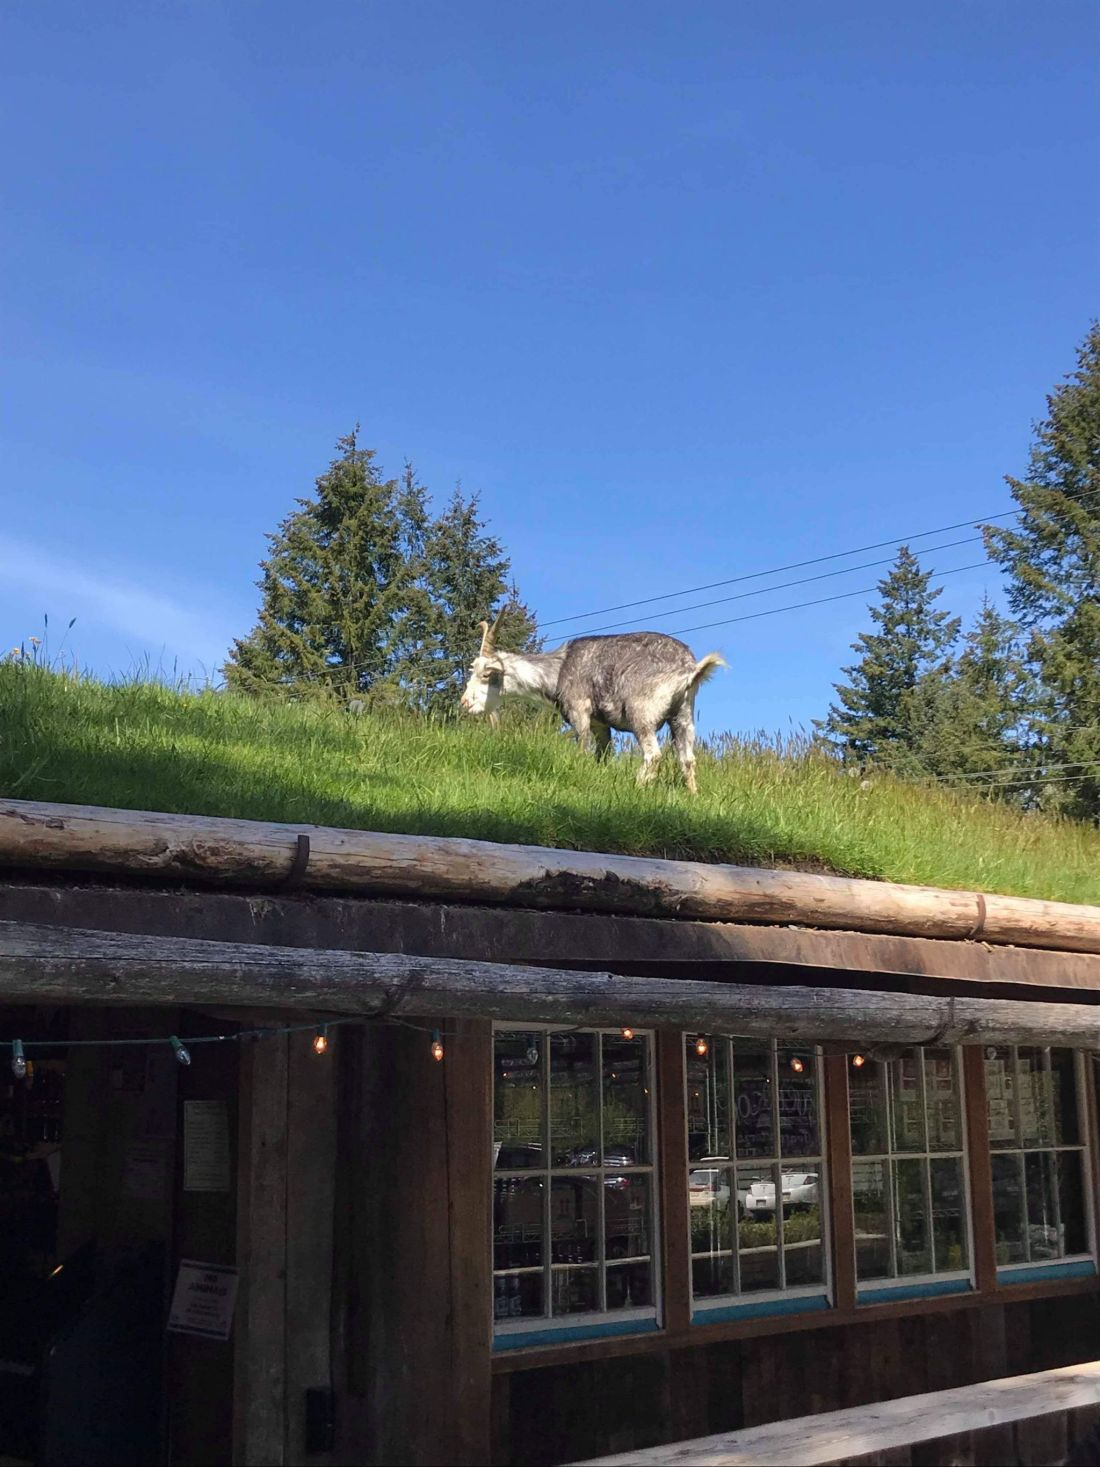 Goats on a Roof, Coombs